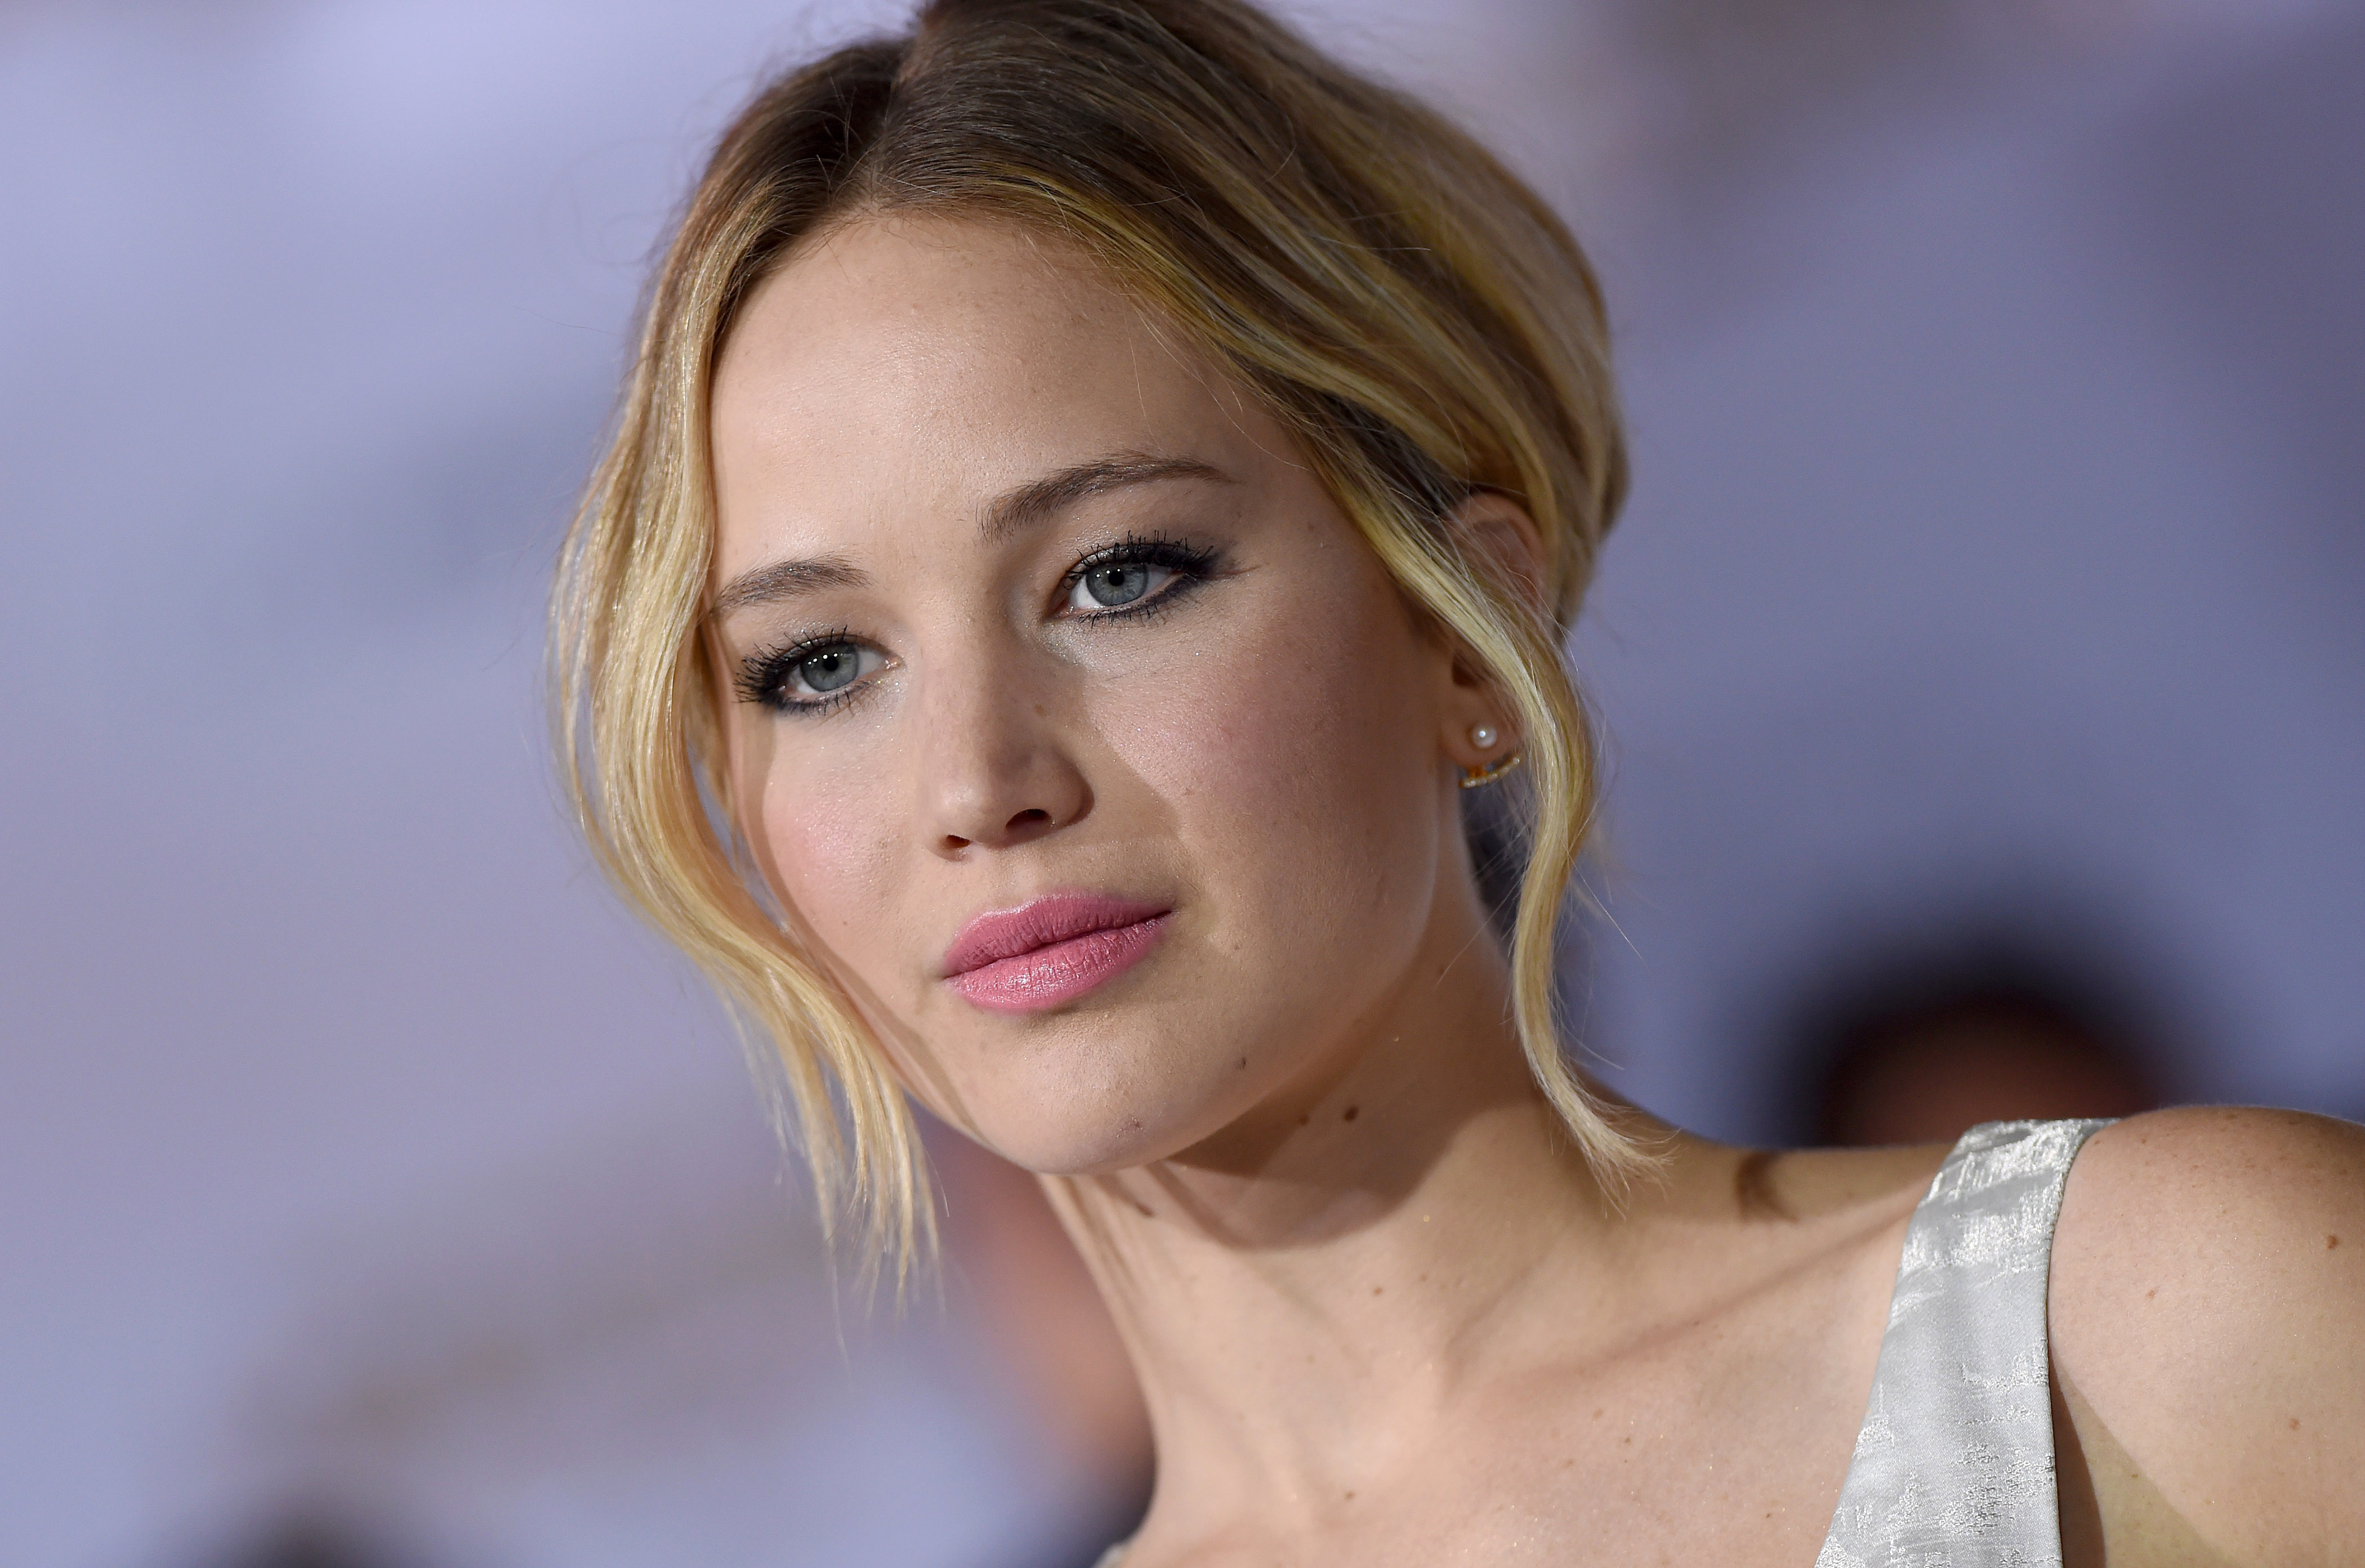 Actress Jennifer Lawrence at the Los Angeles premiere of The Hunger Games: Mockingjay–Part 1 on Nov. 17, 2014